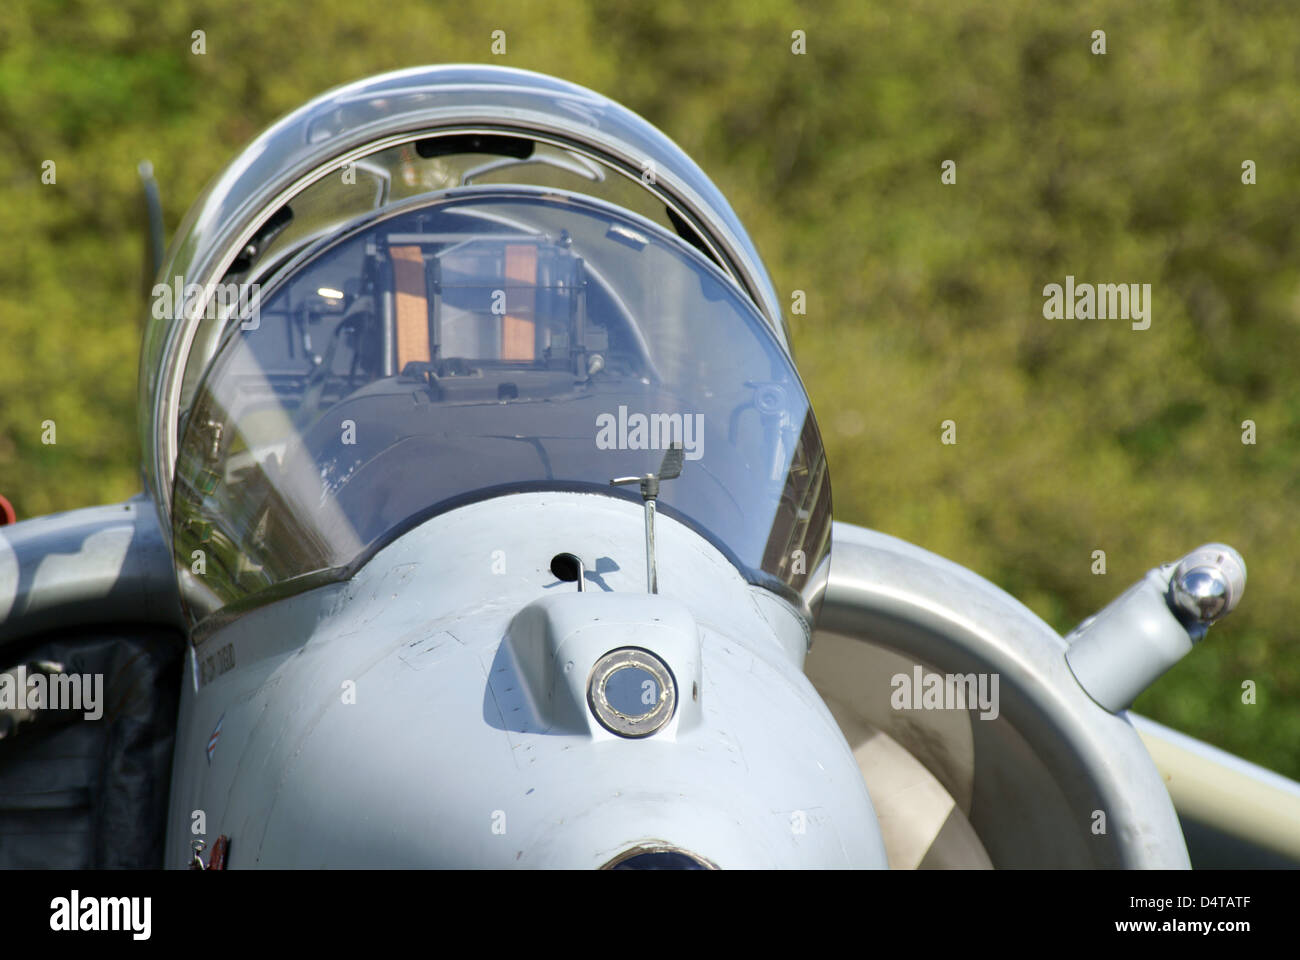 Close-up of a BAE Harrier II aircraft, Niederrhein, Germany. - Stock Image